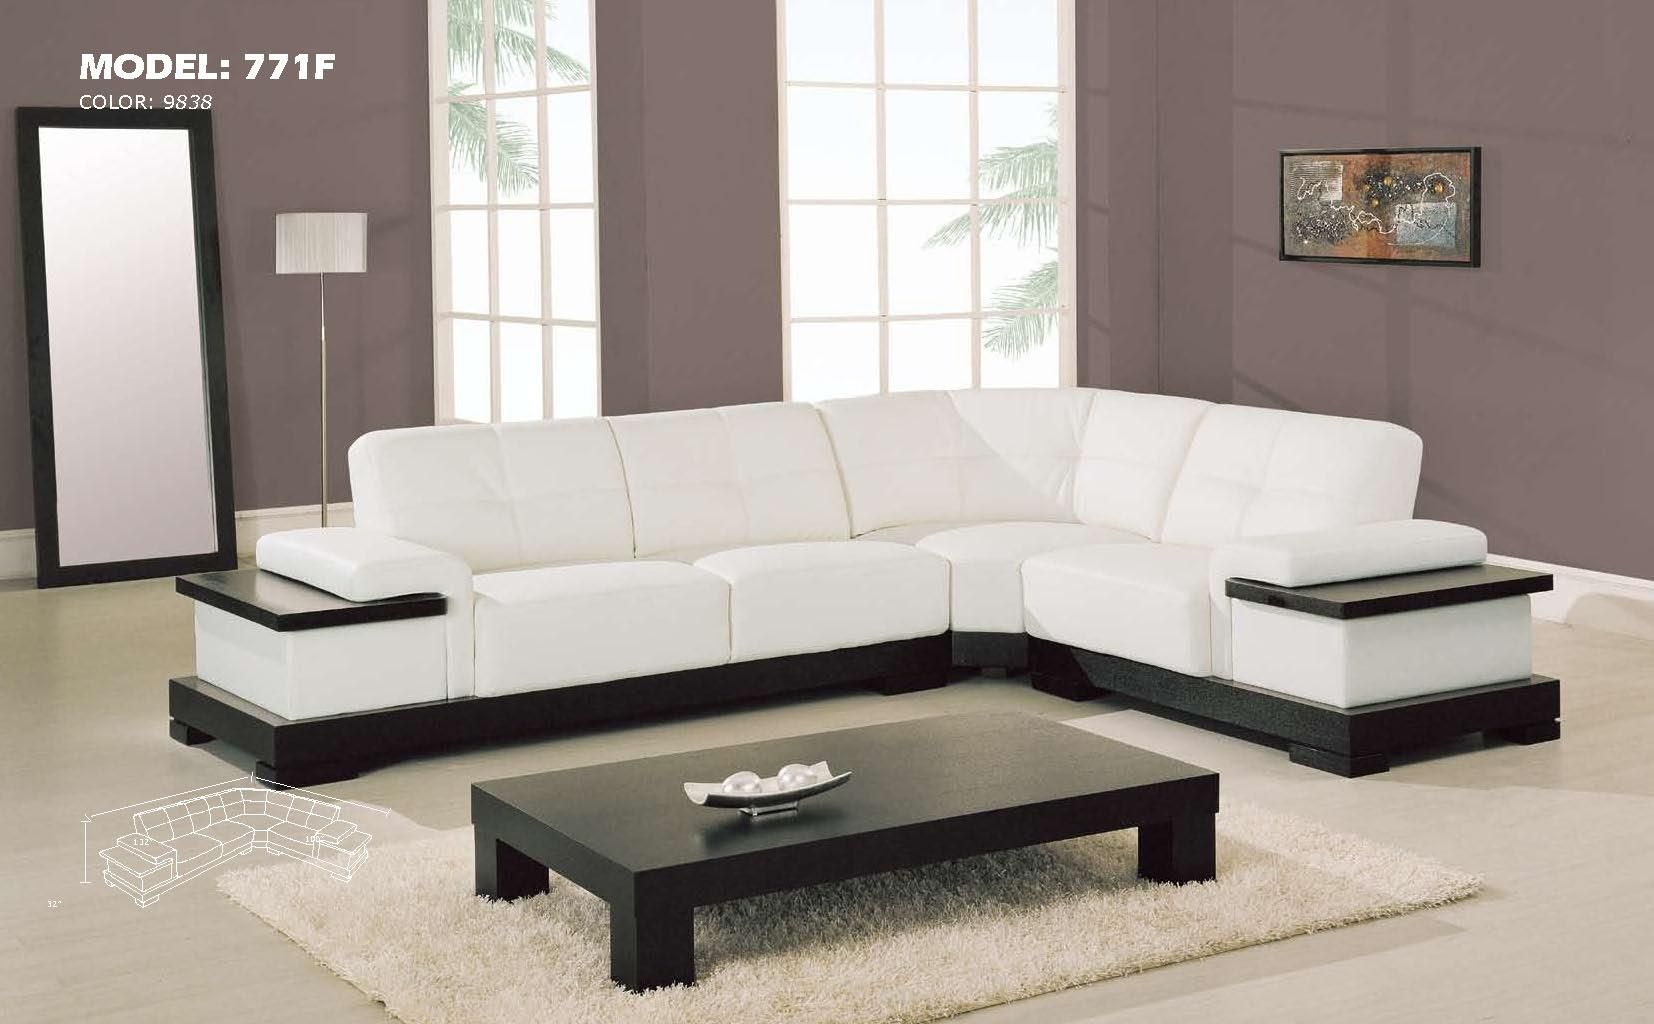 Leather Sofa Sets For Living Room Contemporary Sectional L Shaped Sofa Design Ideas For Living Room